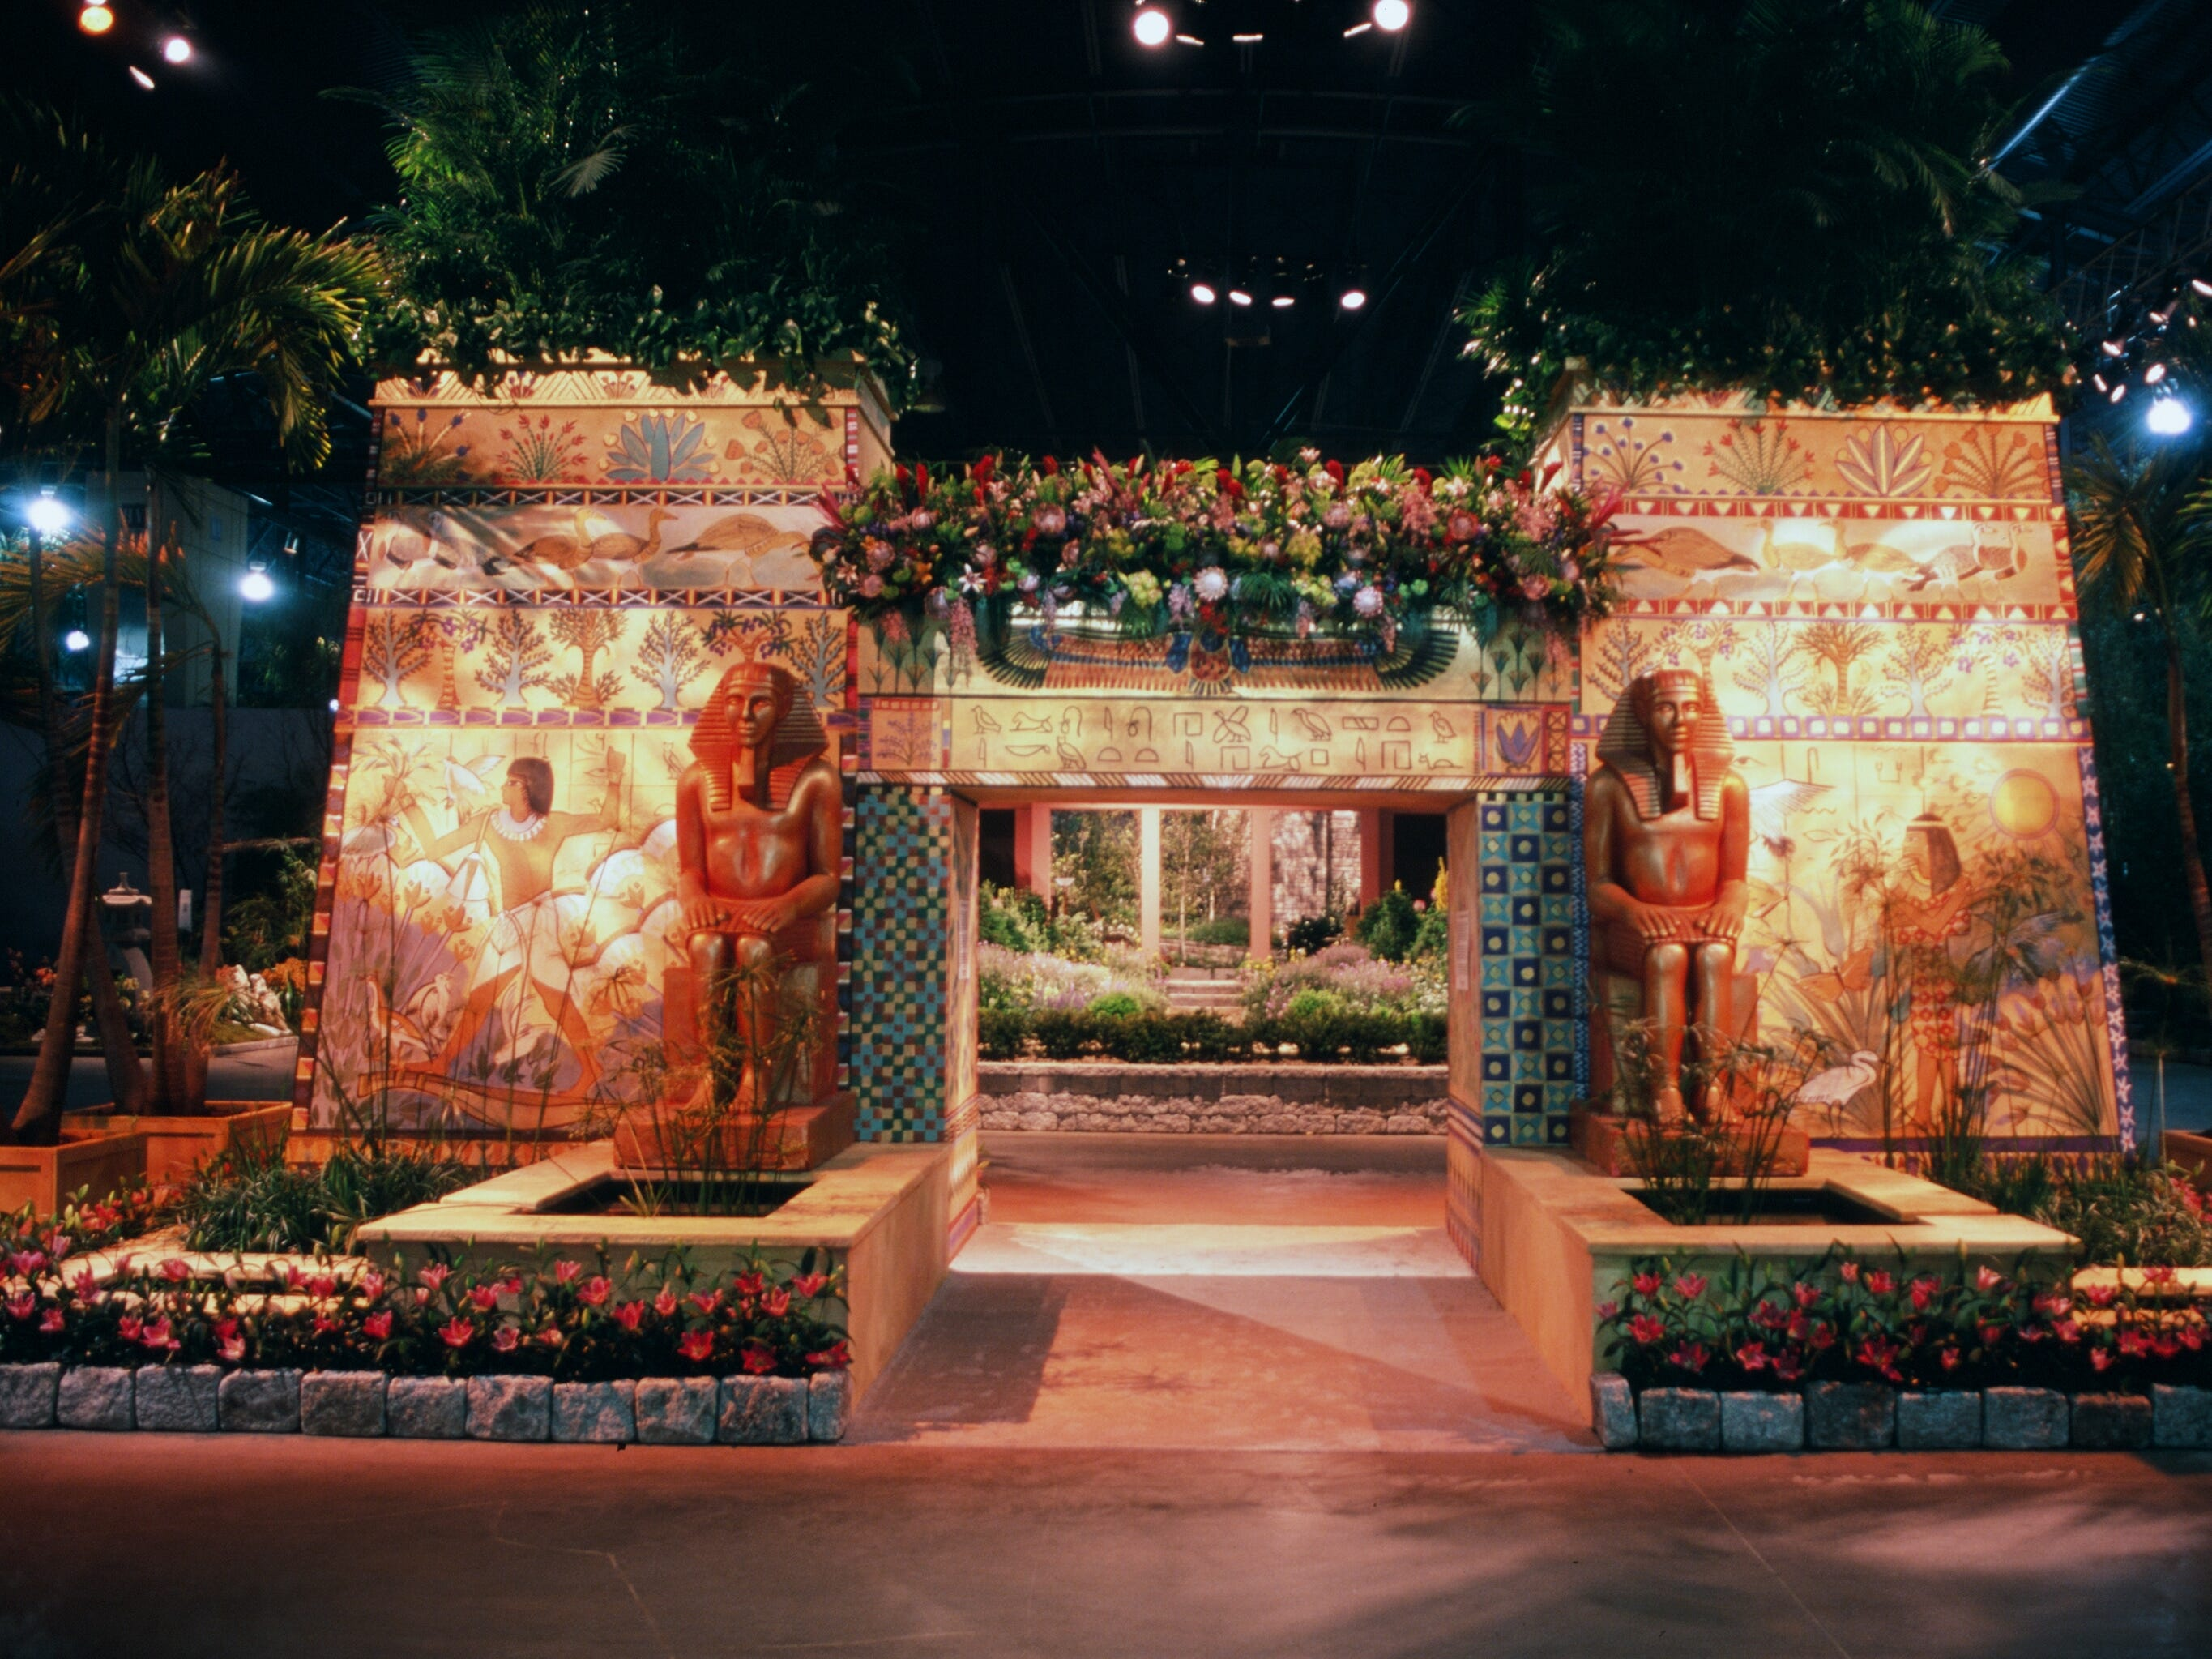 An Egyptian theme greeted guests to the 2001 Philadelphia Flower Show.